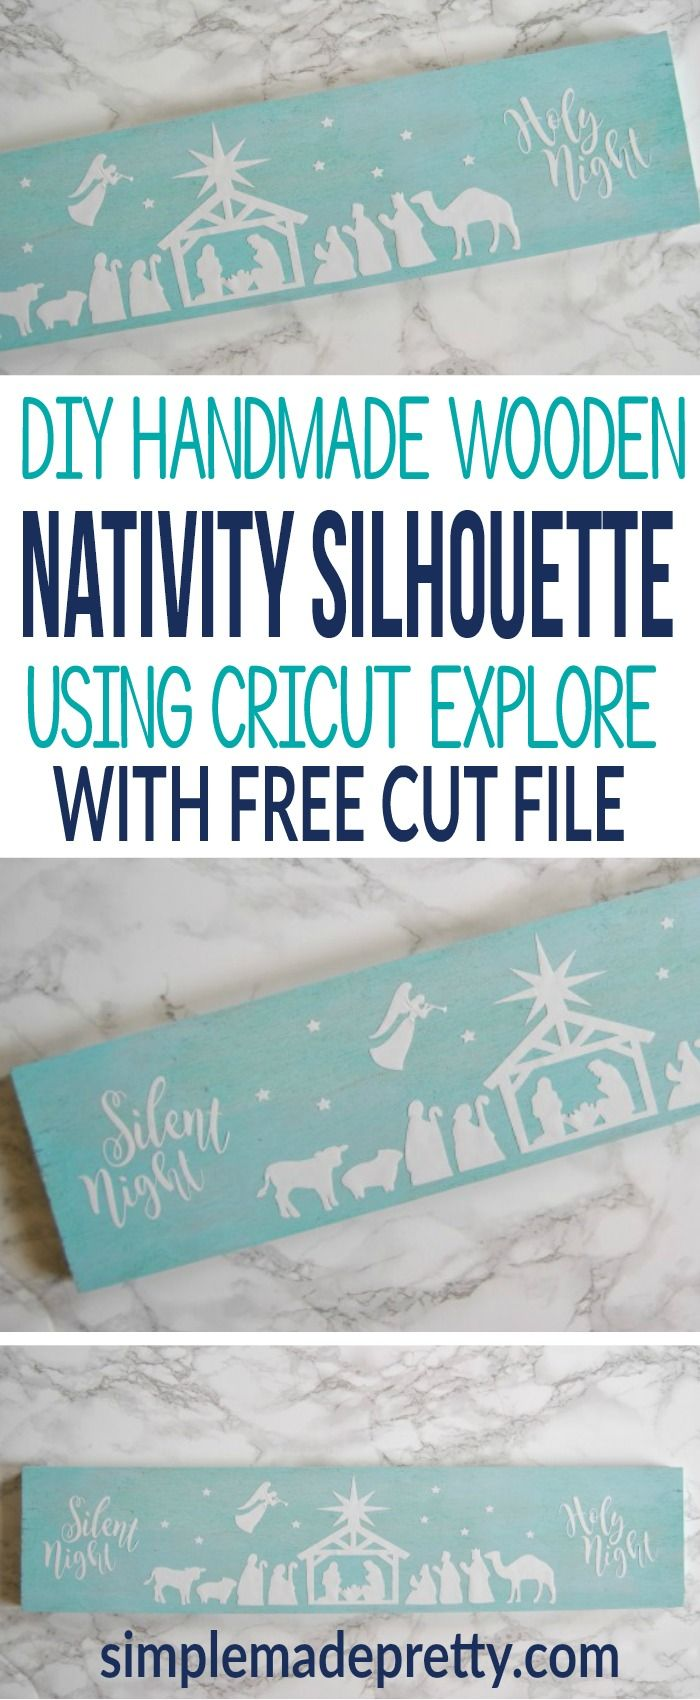 This nativity silhouette on wood is free to cut in Cricut Design Space. Grab the link to the free nativity silhouette template to make this easy rustic Christmas decor DIY idea. I made nativity scene for our Christmas mantle decor and it turned out beautiful. via @SMPblog